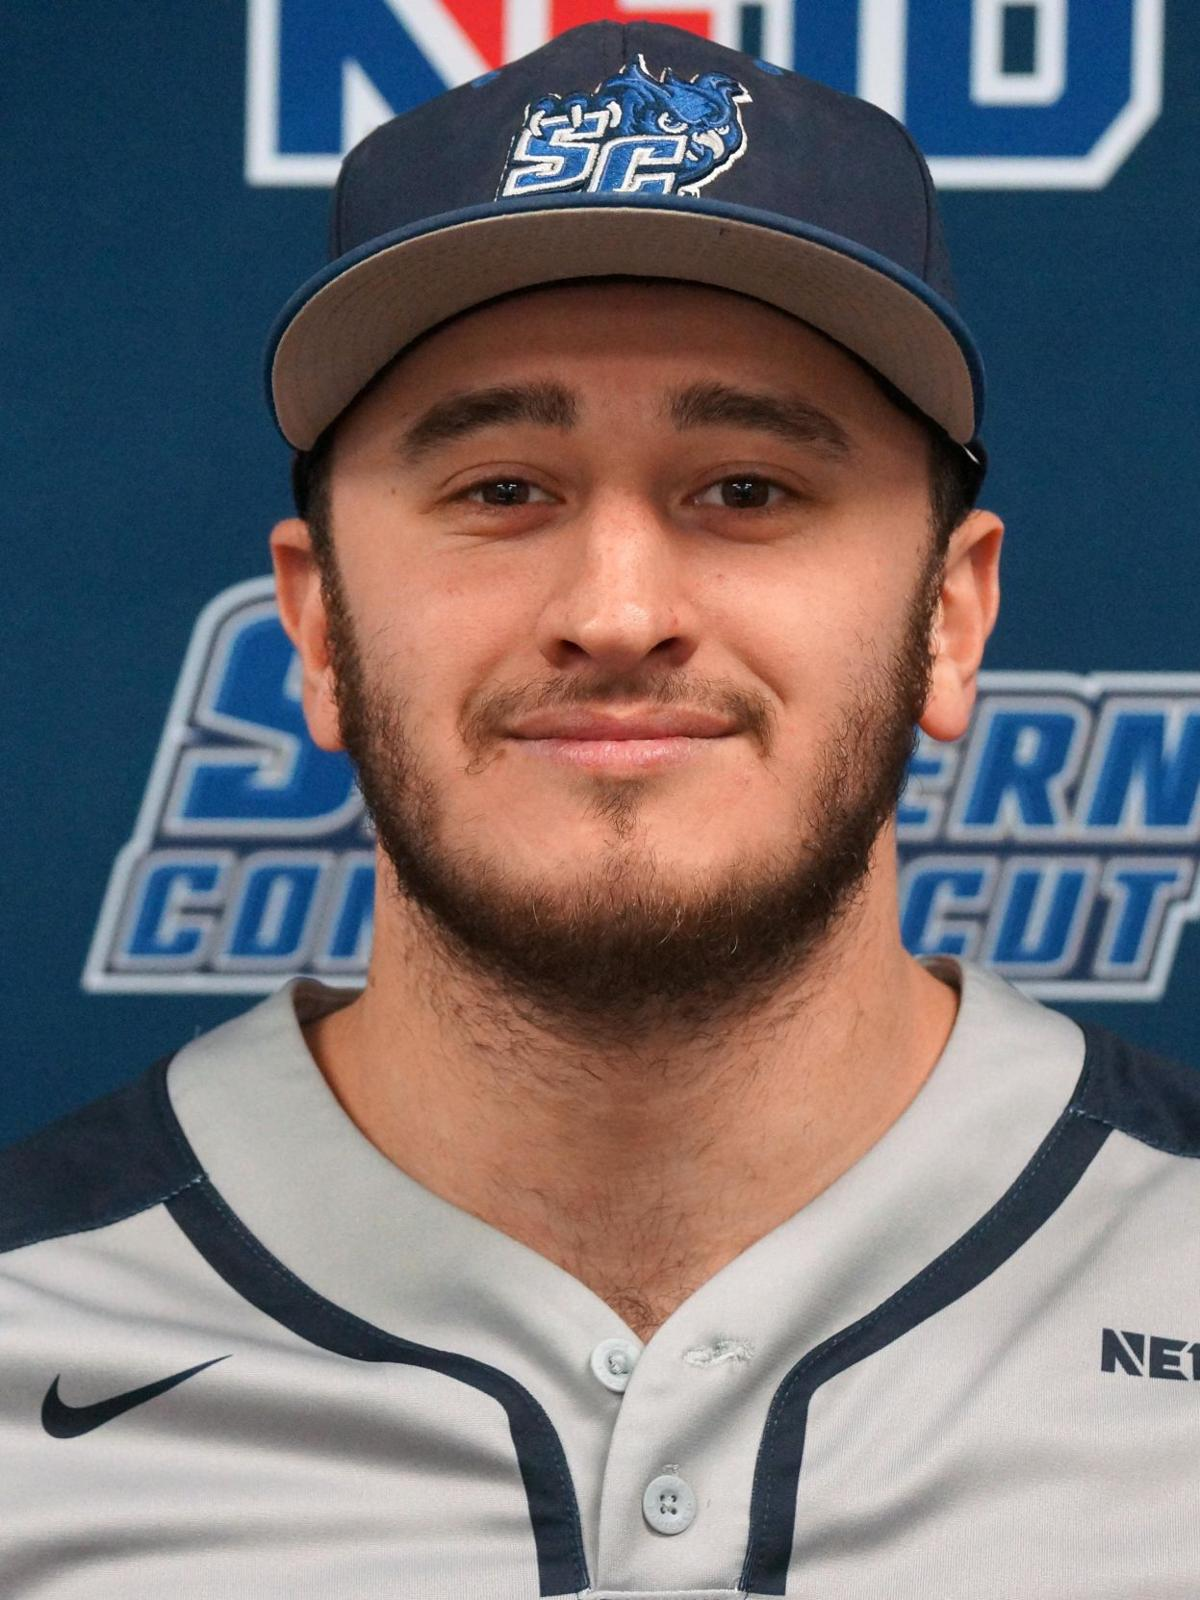 Branford's Criscuolo defies odds, returns to field for SCSU following collision